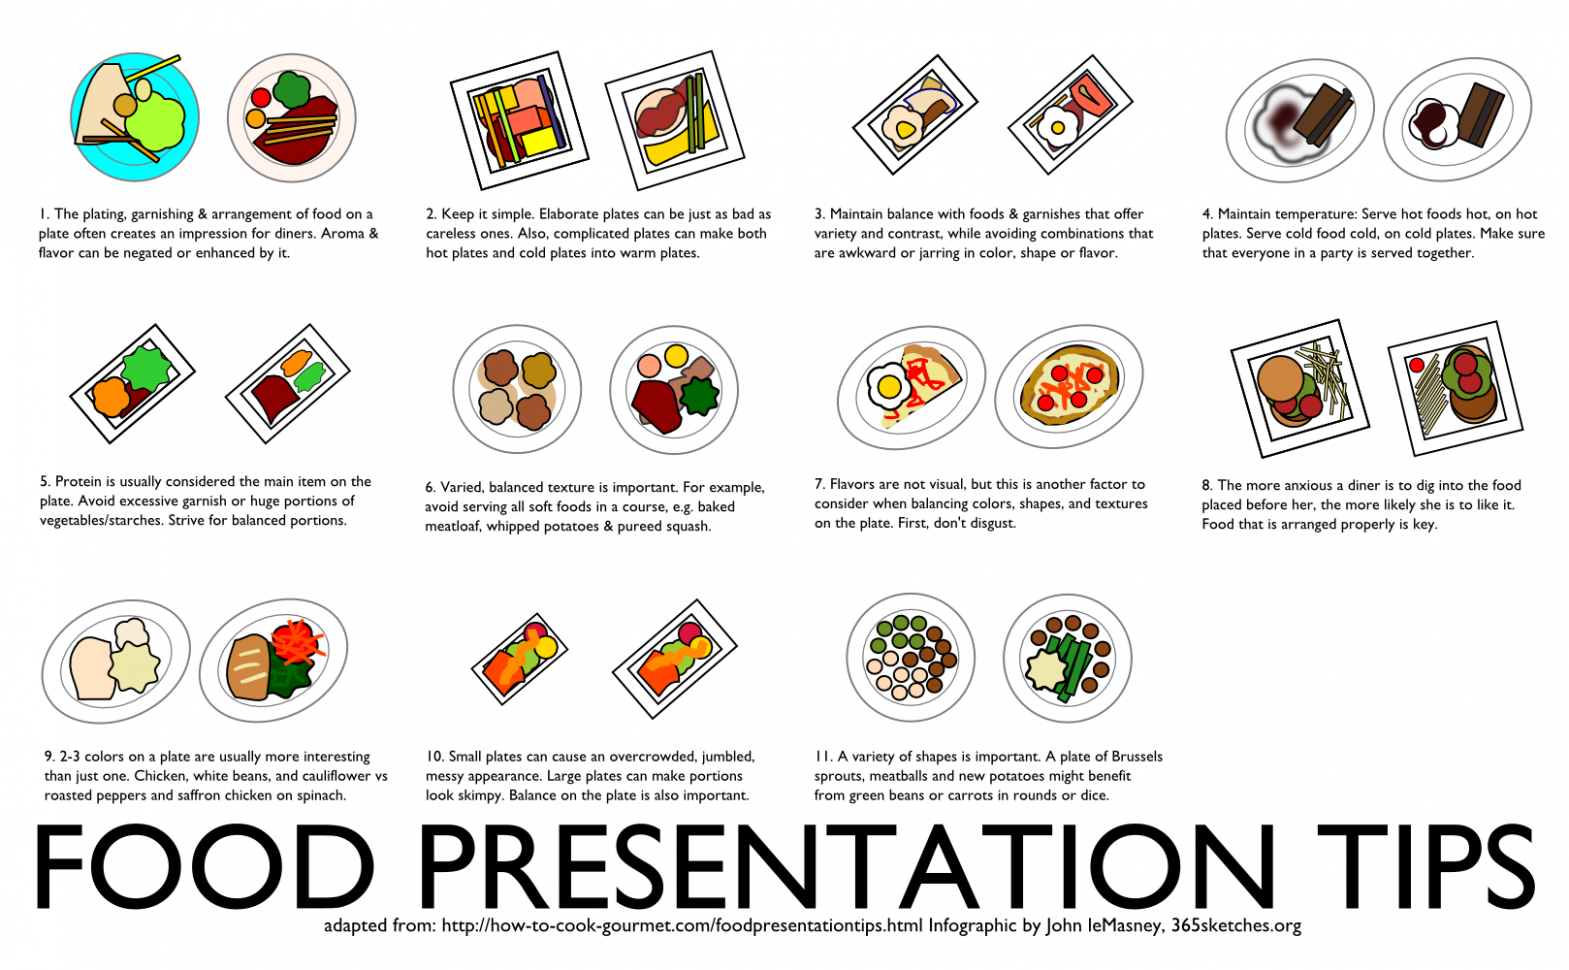 What Are Some Great Food Presentation Hacks? - Quora | Food ...